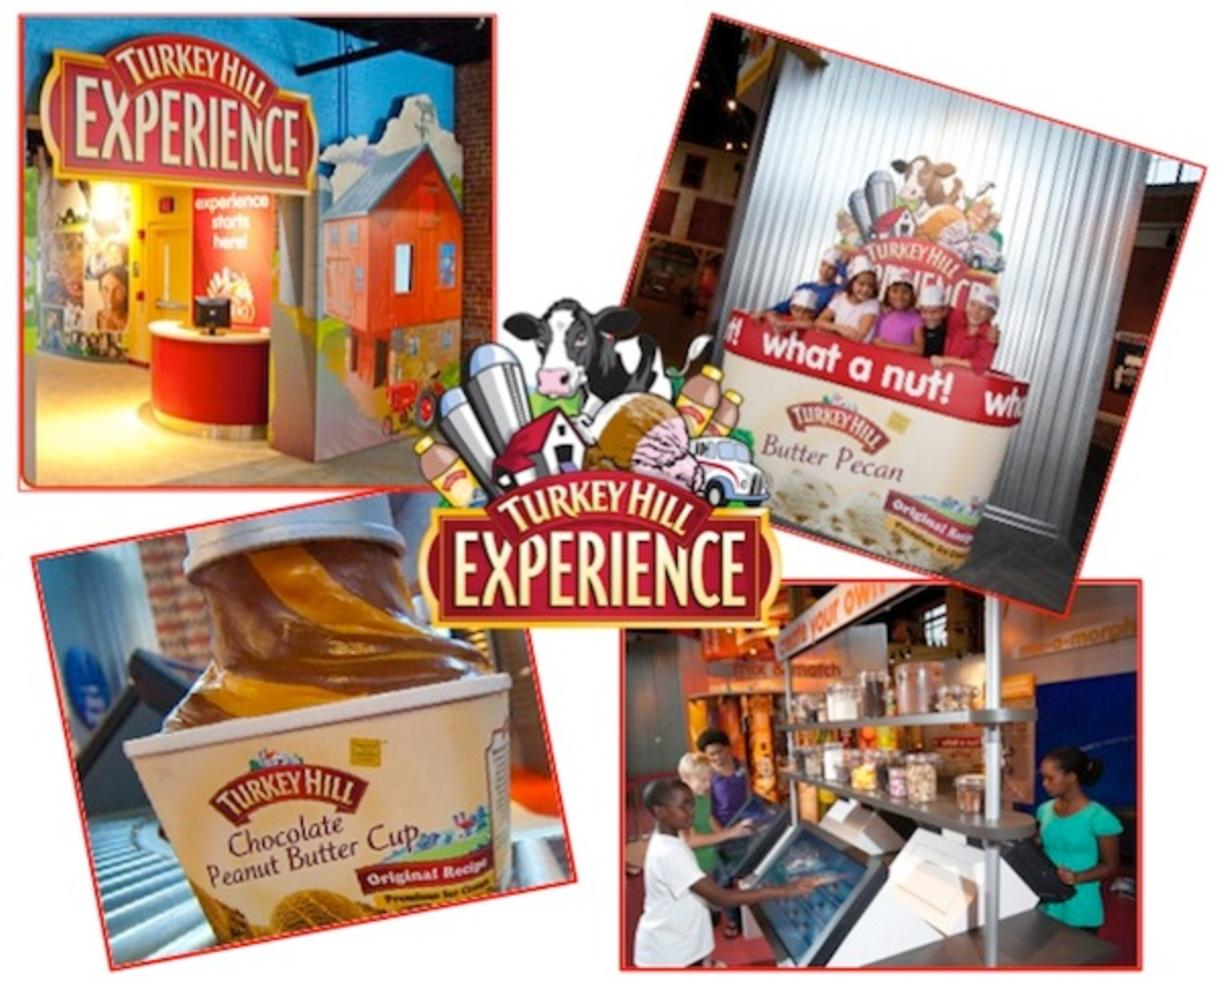 $7 for Turkey Hill Experience Admission - ICE CREAM!! (30% Off!)